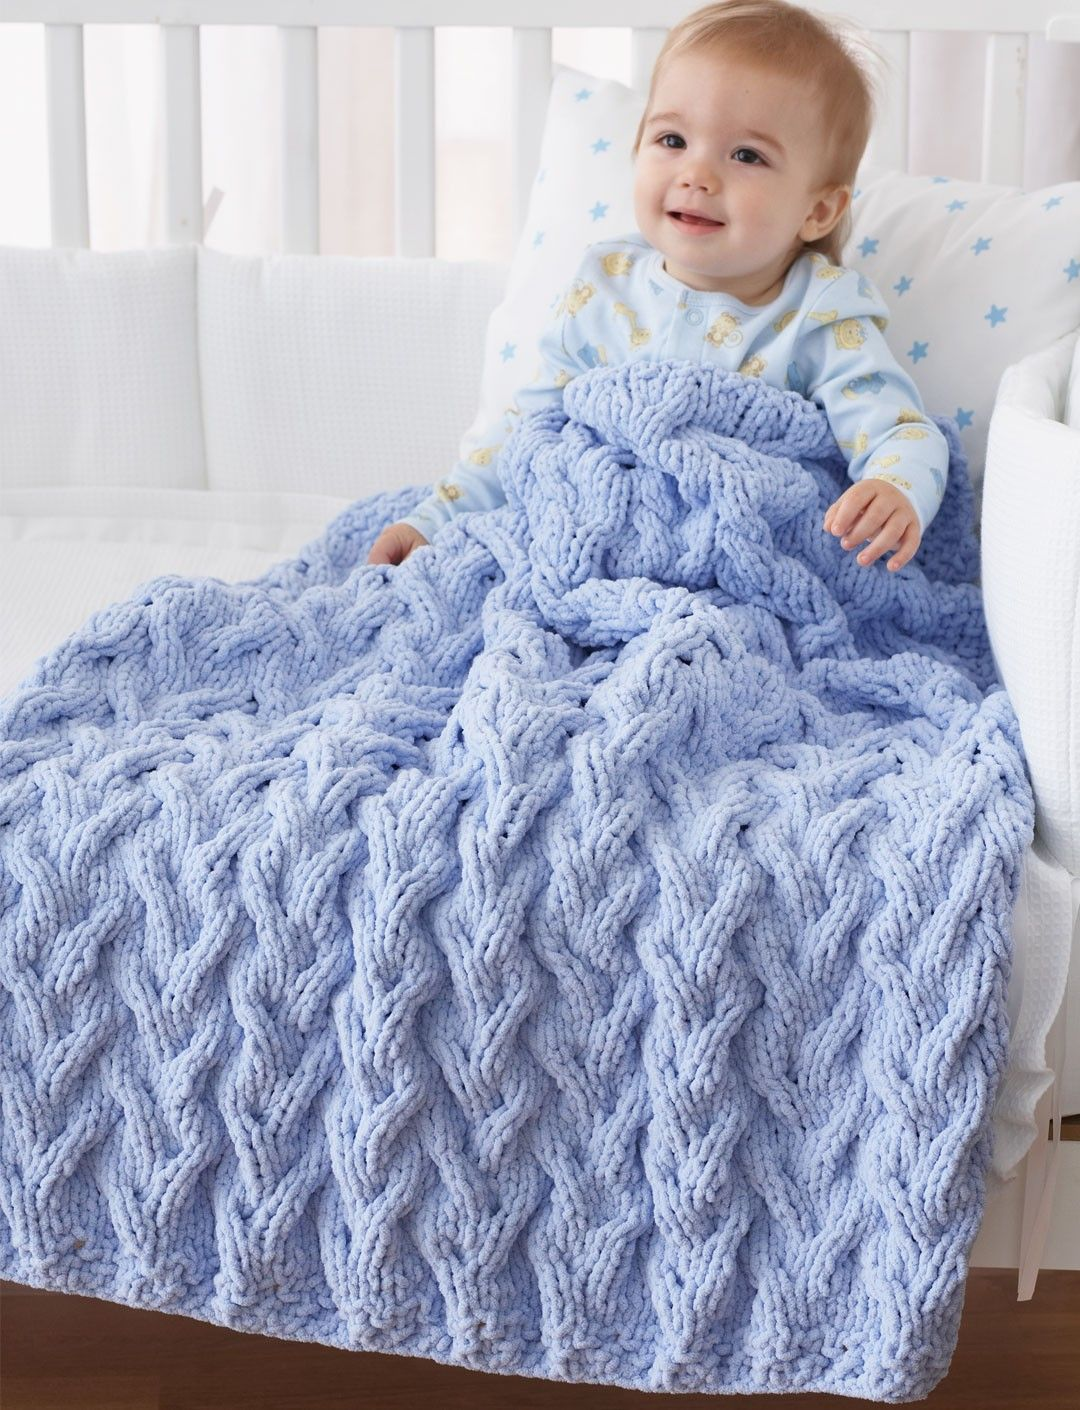 Cable Afghan Knitting Patterns | Cable, Blanket and Knitting patterns